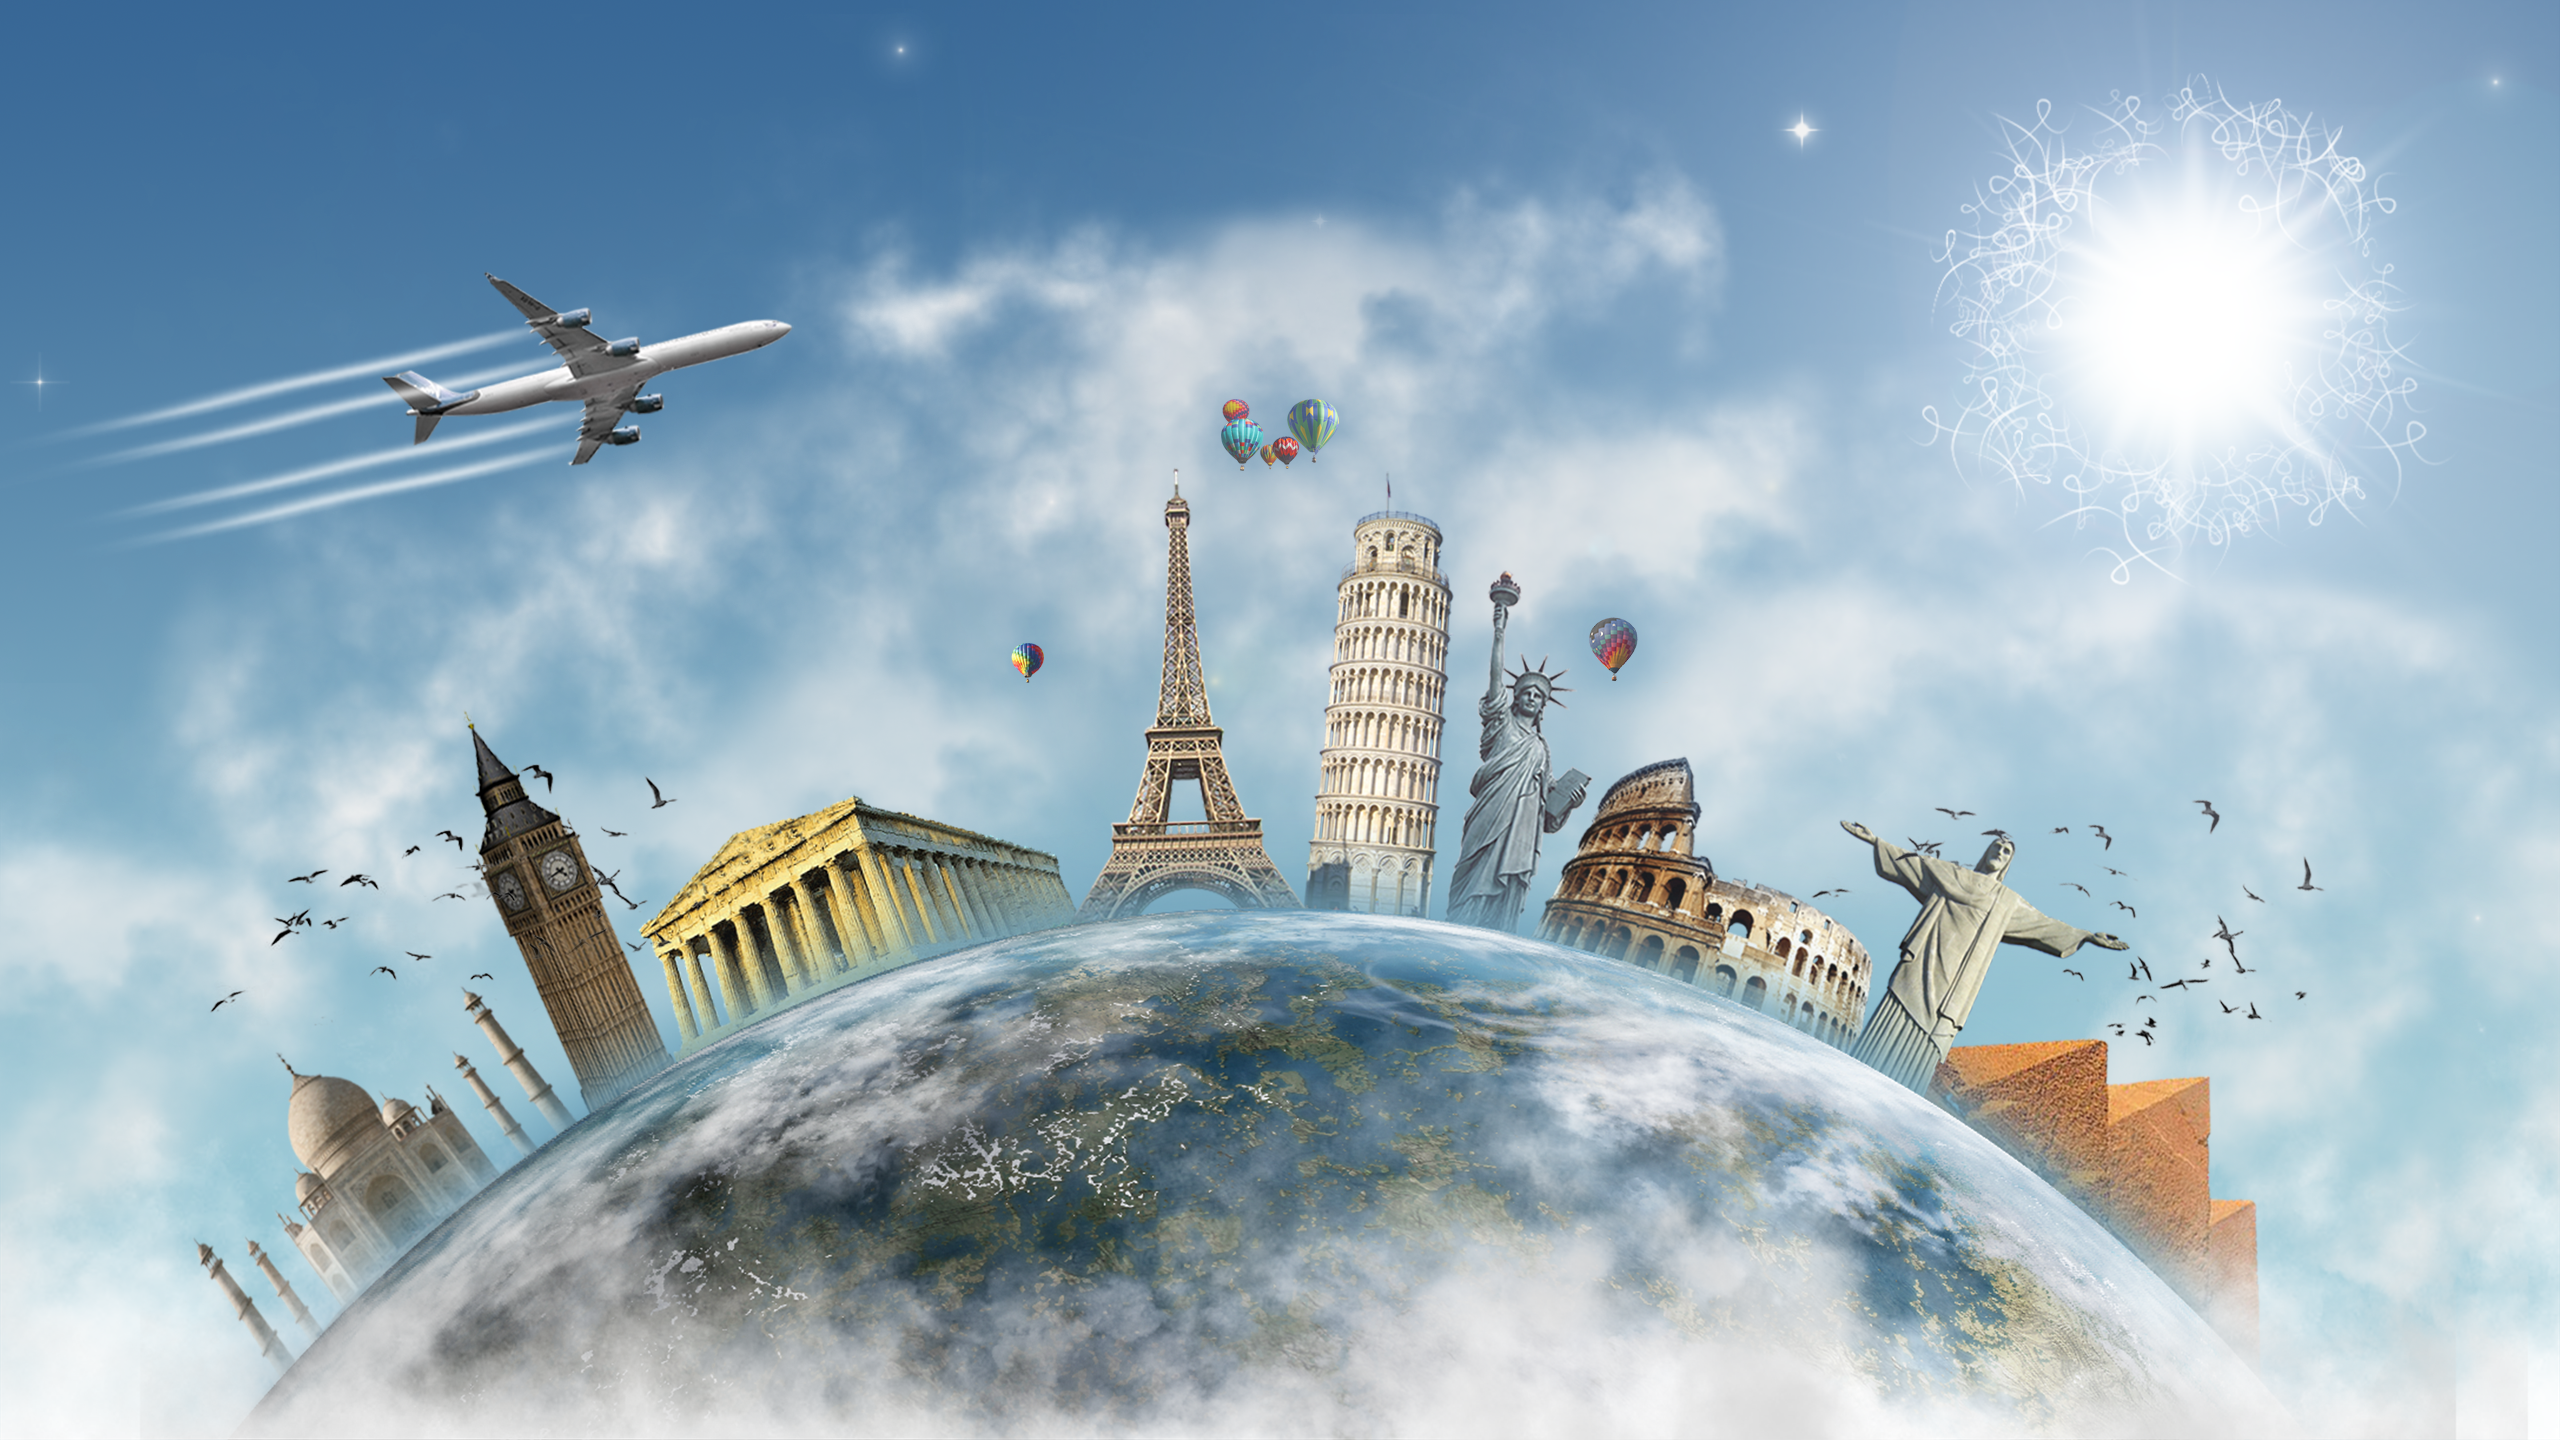 Travel the World HD Wallpaper | Background Image ...  Travel